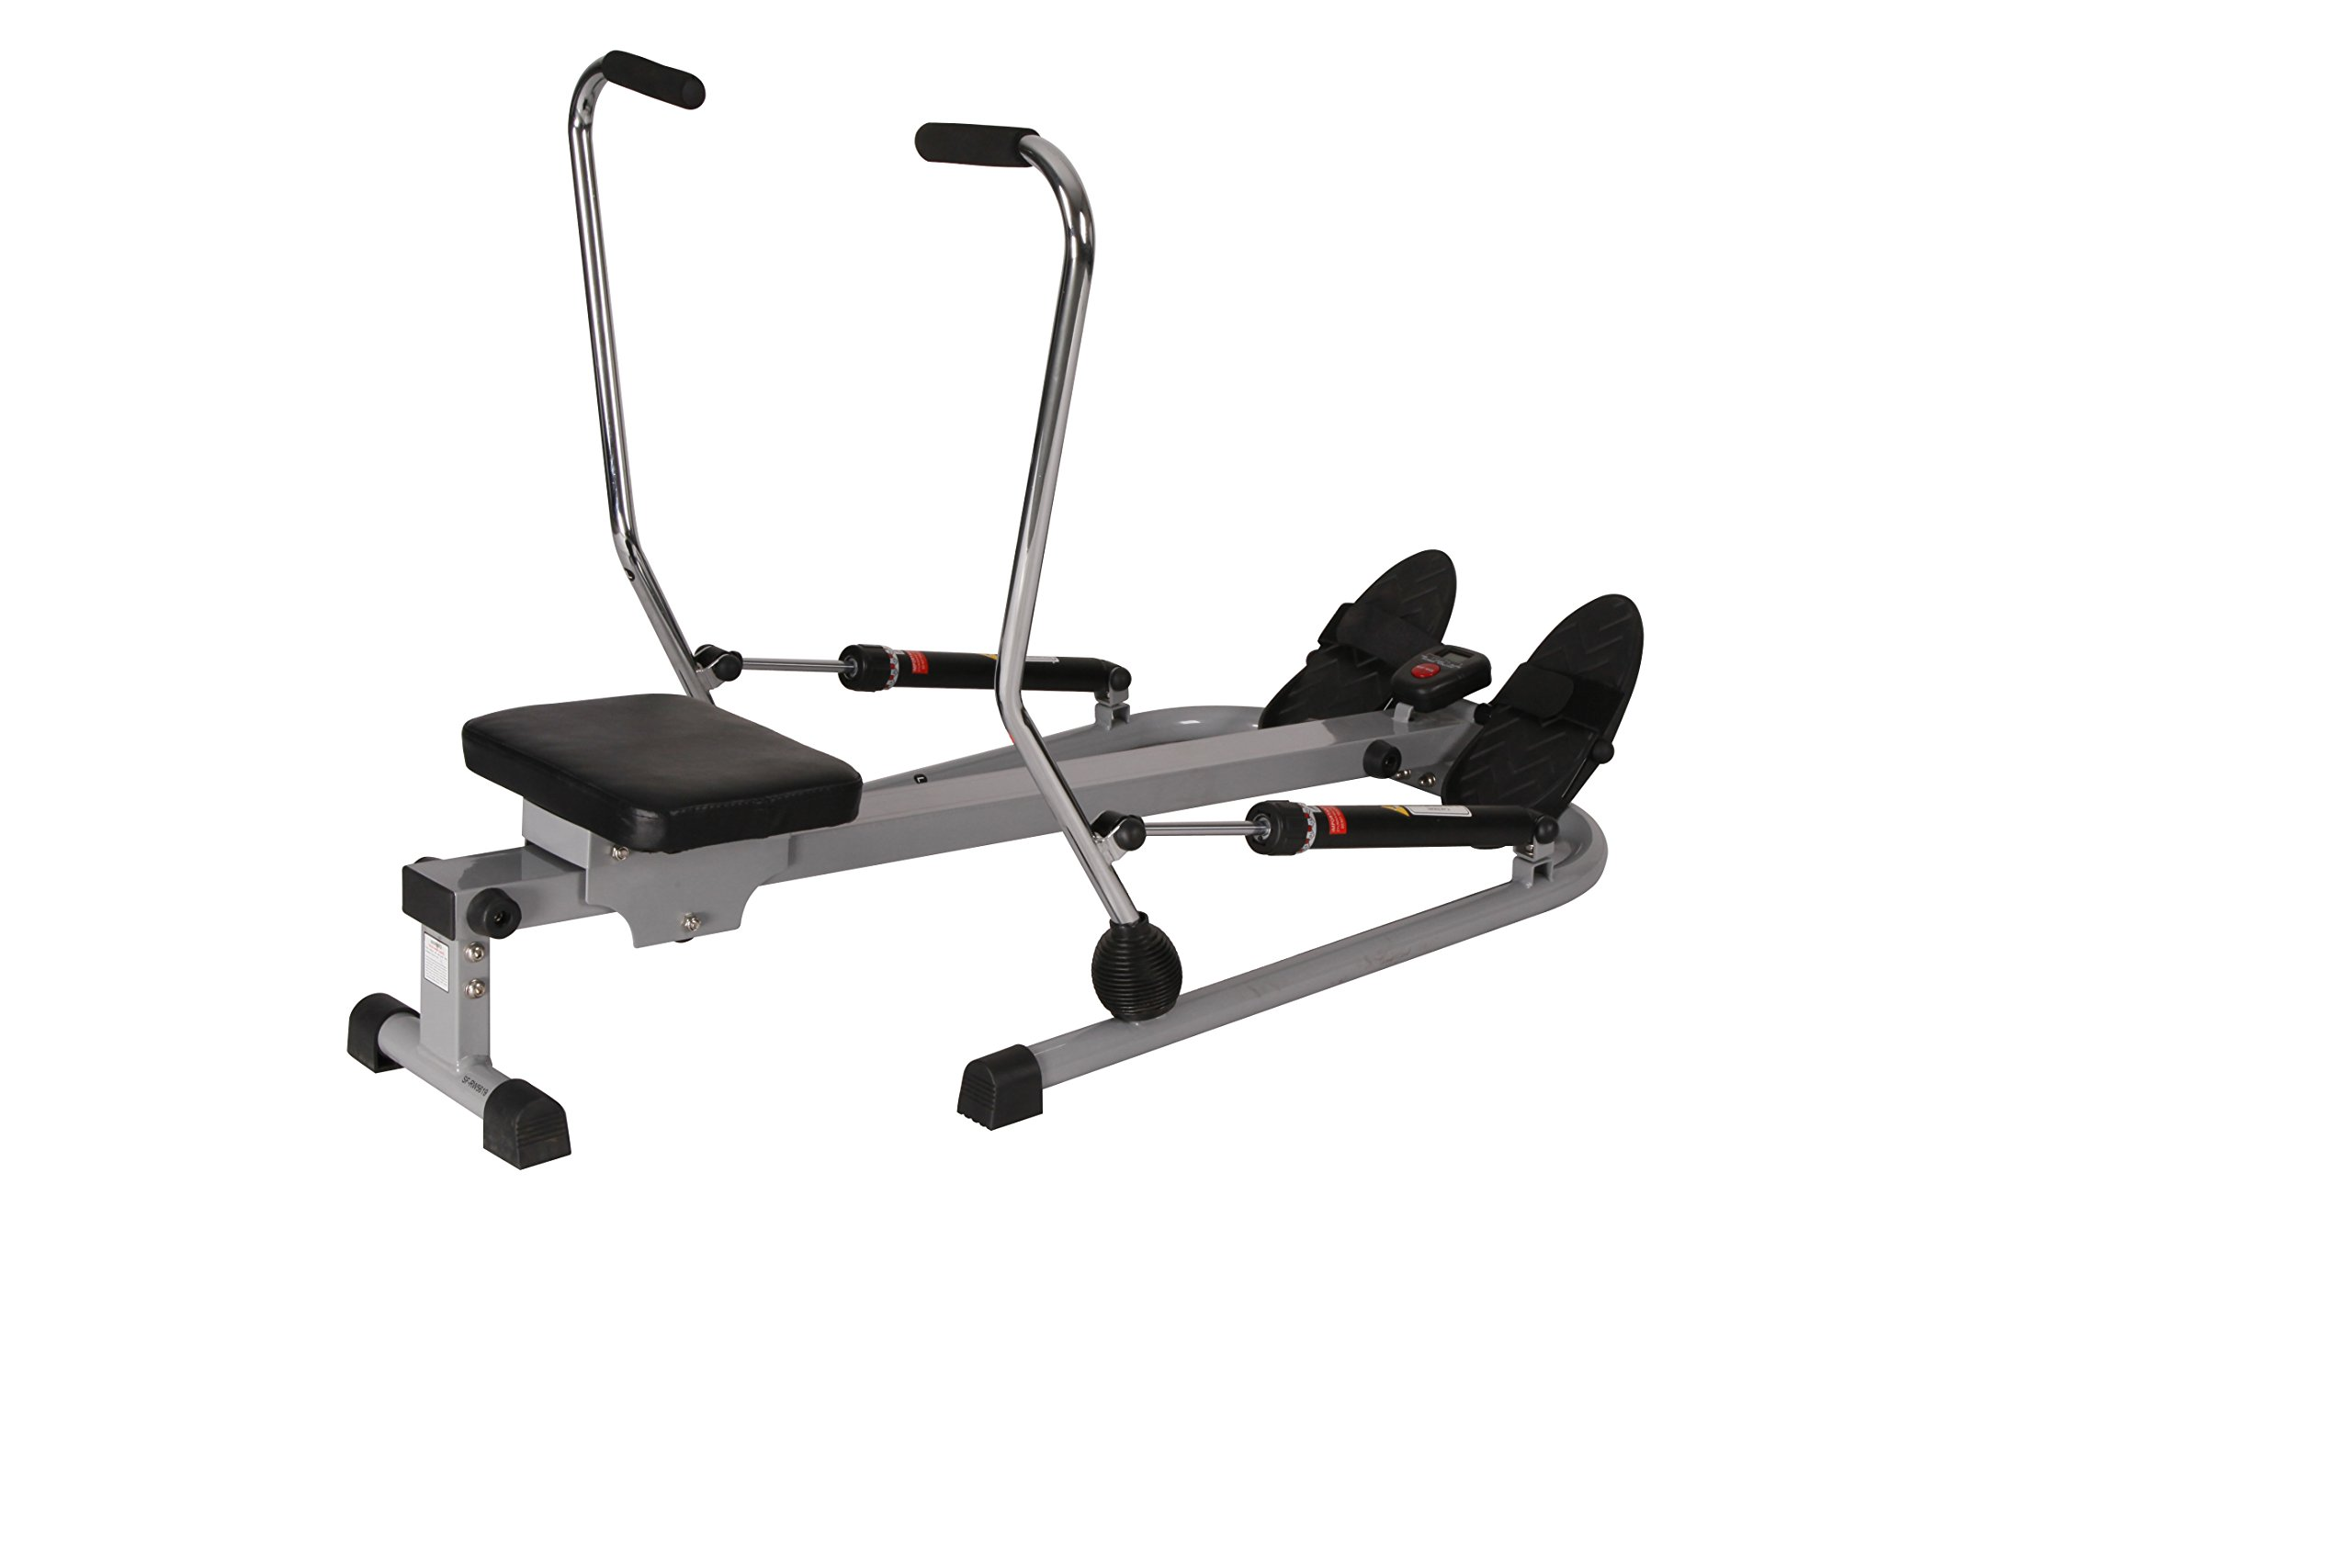 Sunny Health & Fitness SF-RW5619 12 Level Resistance Rowing Machine Rower w/ Independent Arms by Sunny Health & Fitness (Image #2)